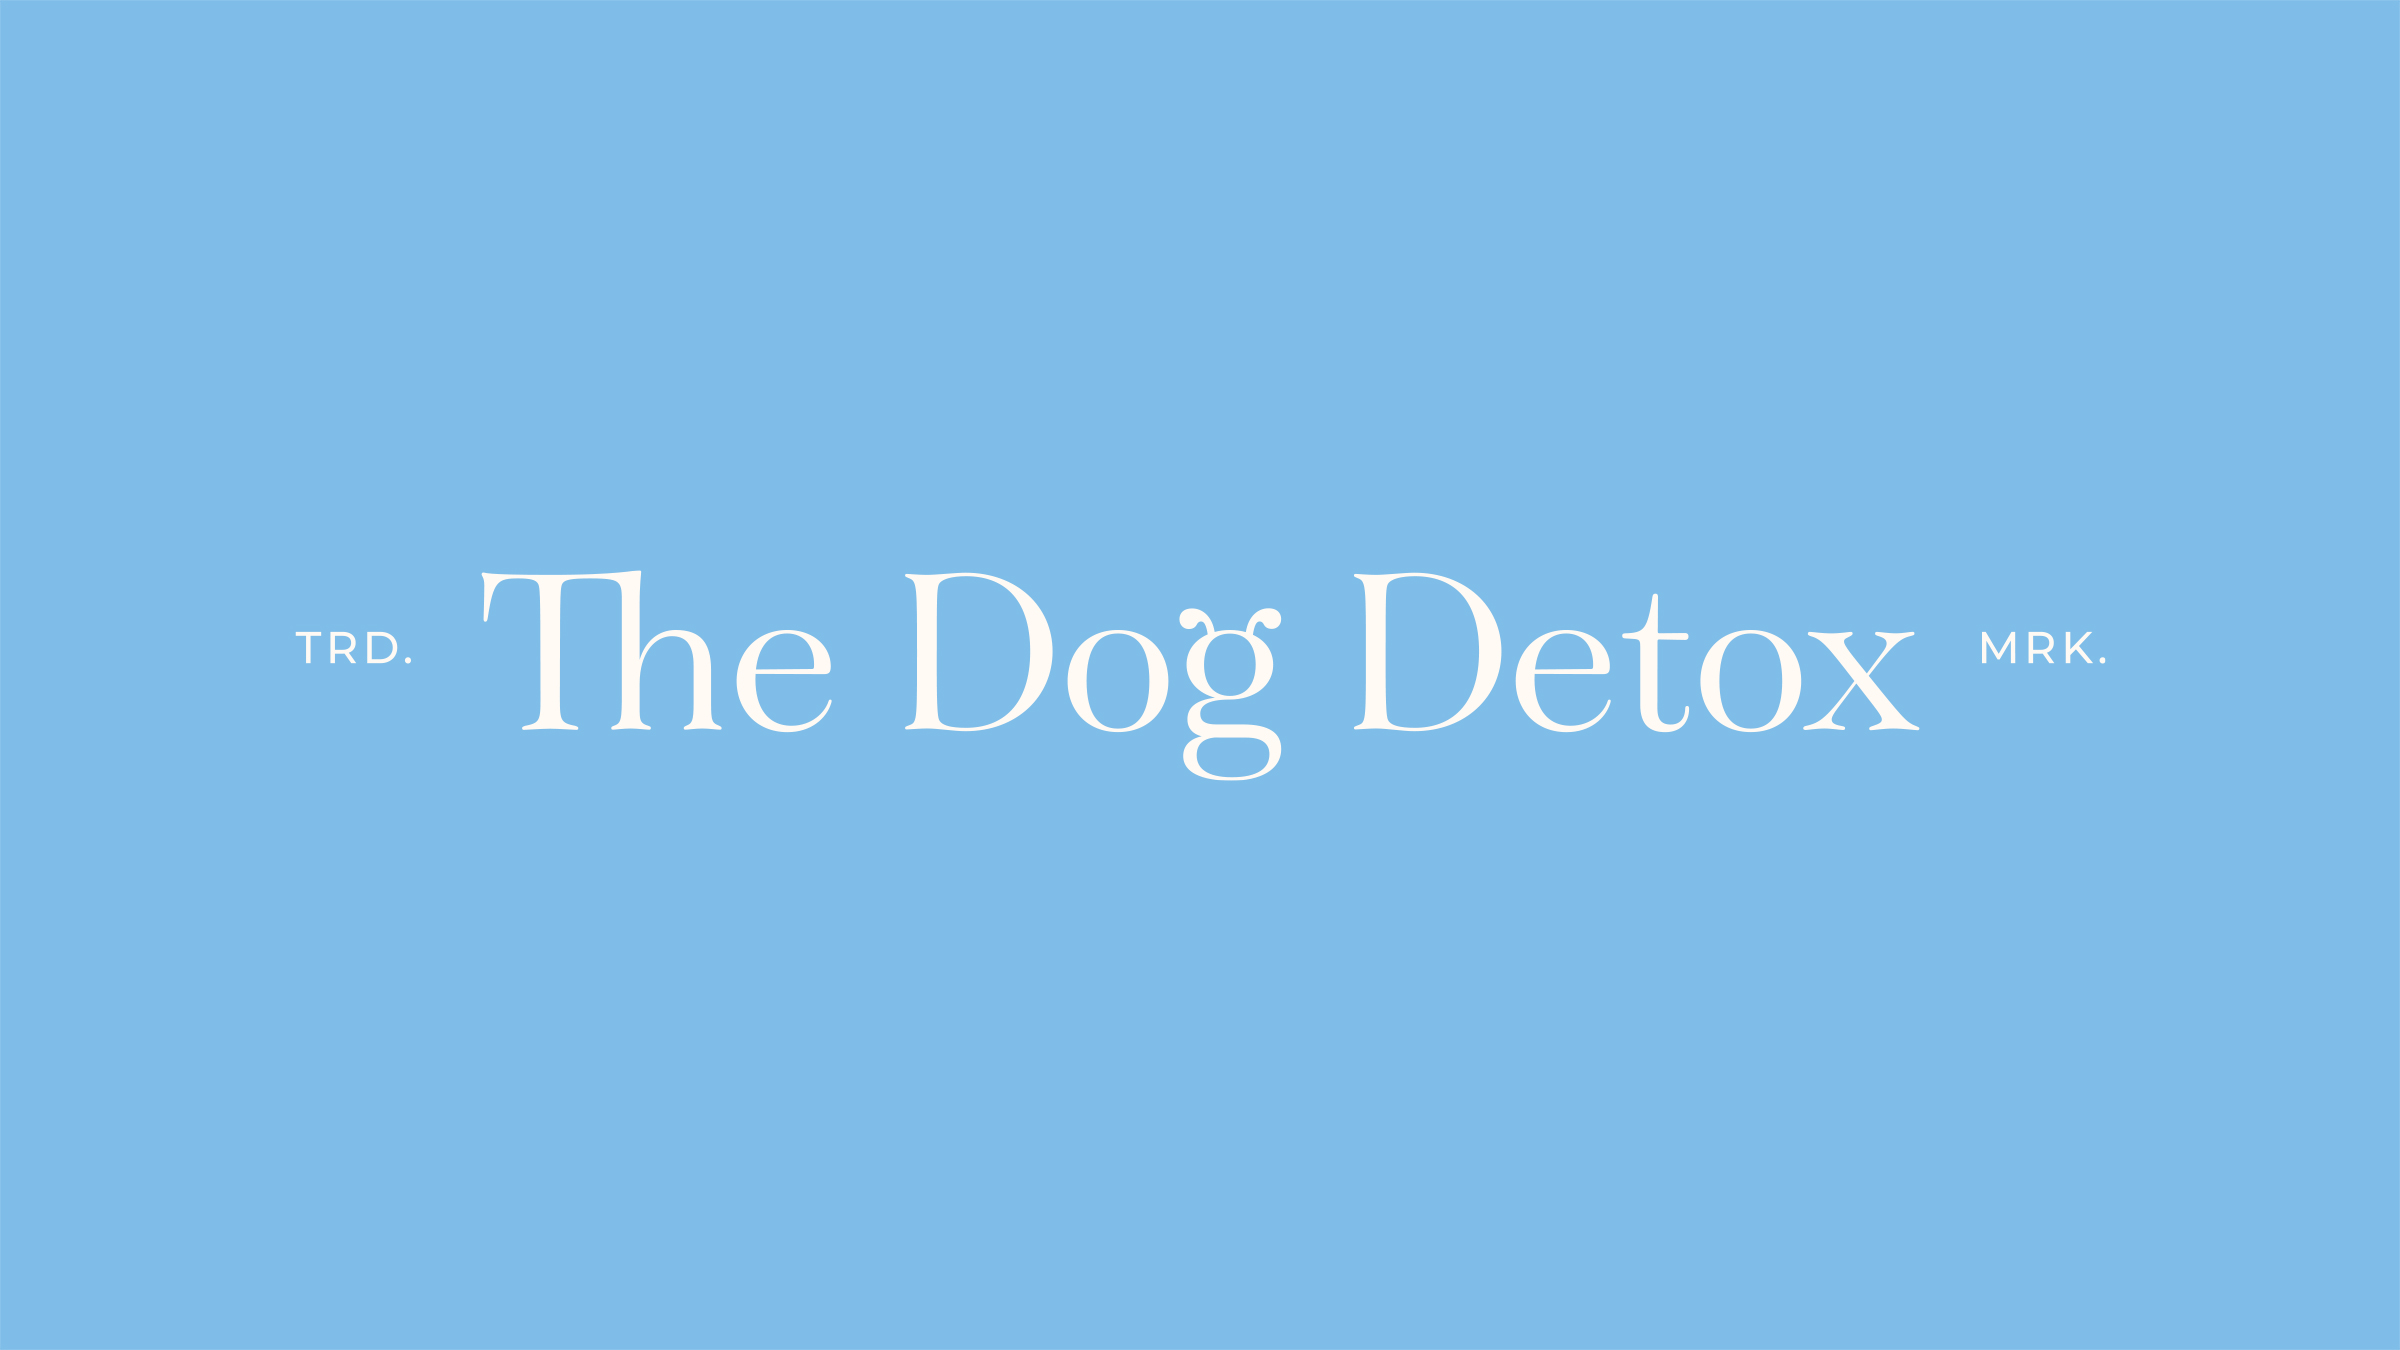 The Dog Detox brand logo white on baby blue